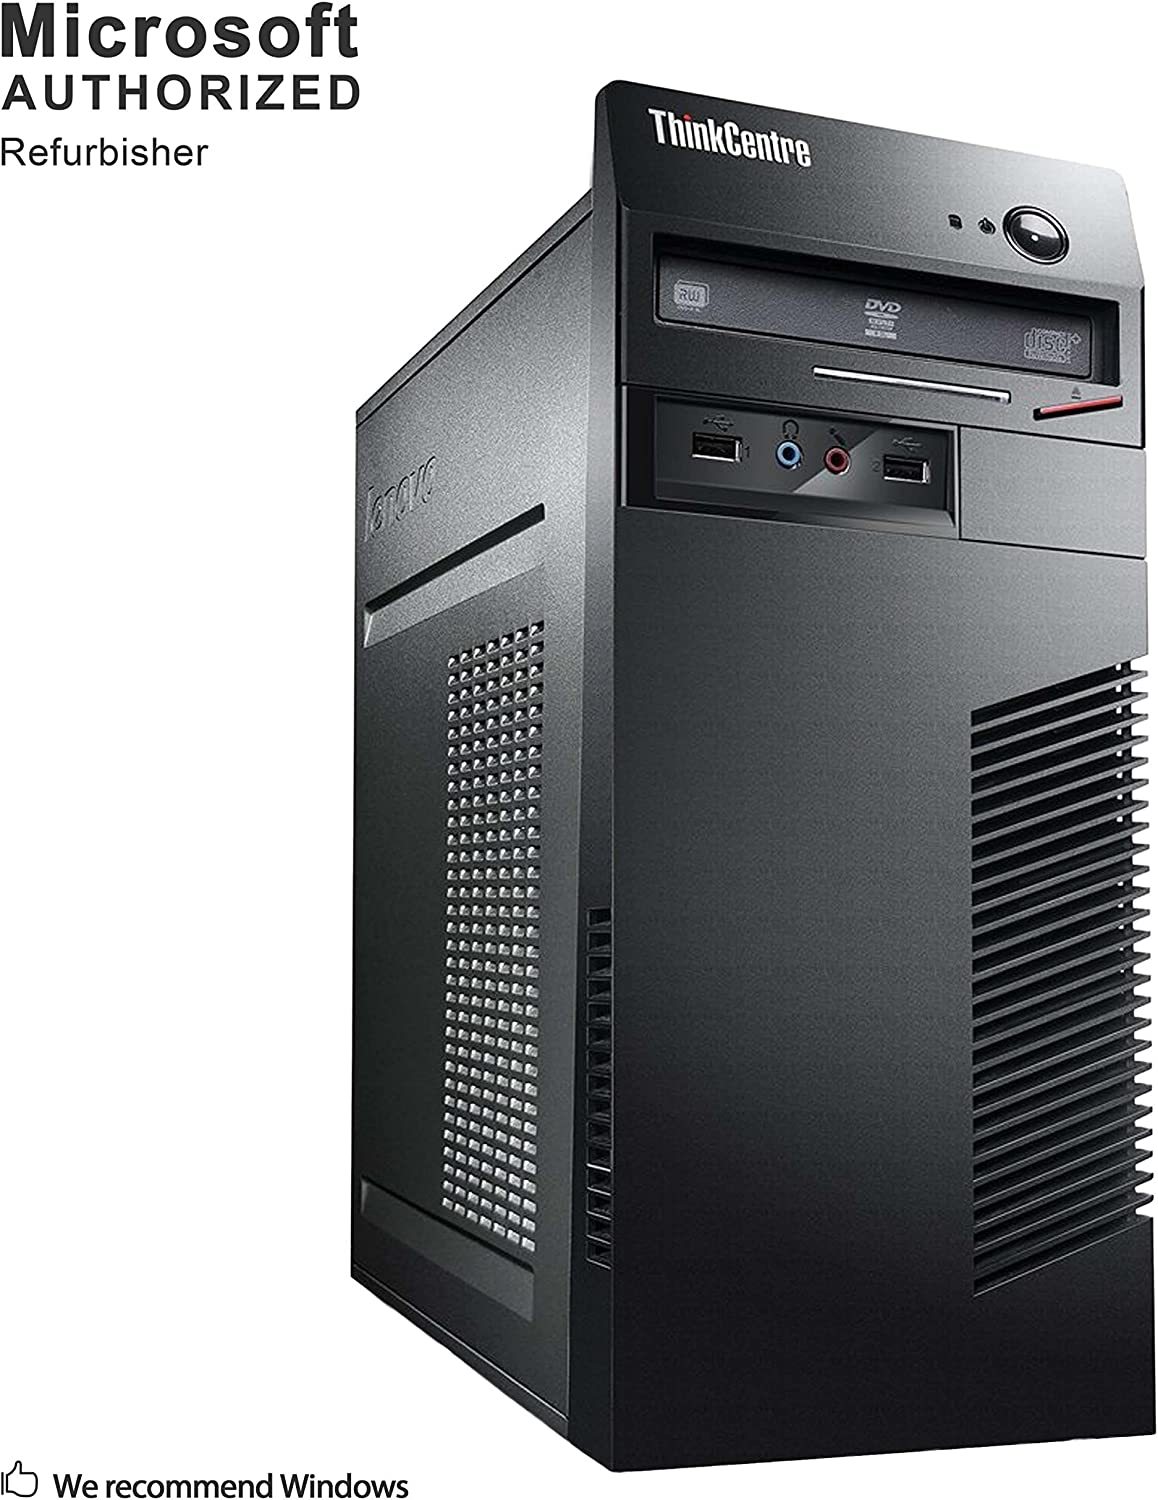 Lenovo ThinkCentre M72e Tower Desktop PC, Intel Quad Core i7 3770 up to 3.8GHz, 8G DDR3, 120G SSD + 1T HDD, WiFi, BT 4.0, DVD, Windows 10 64-Multi-Language Support English/Spanish/French(Renewed)